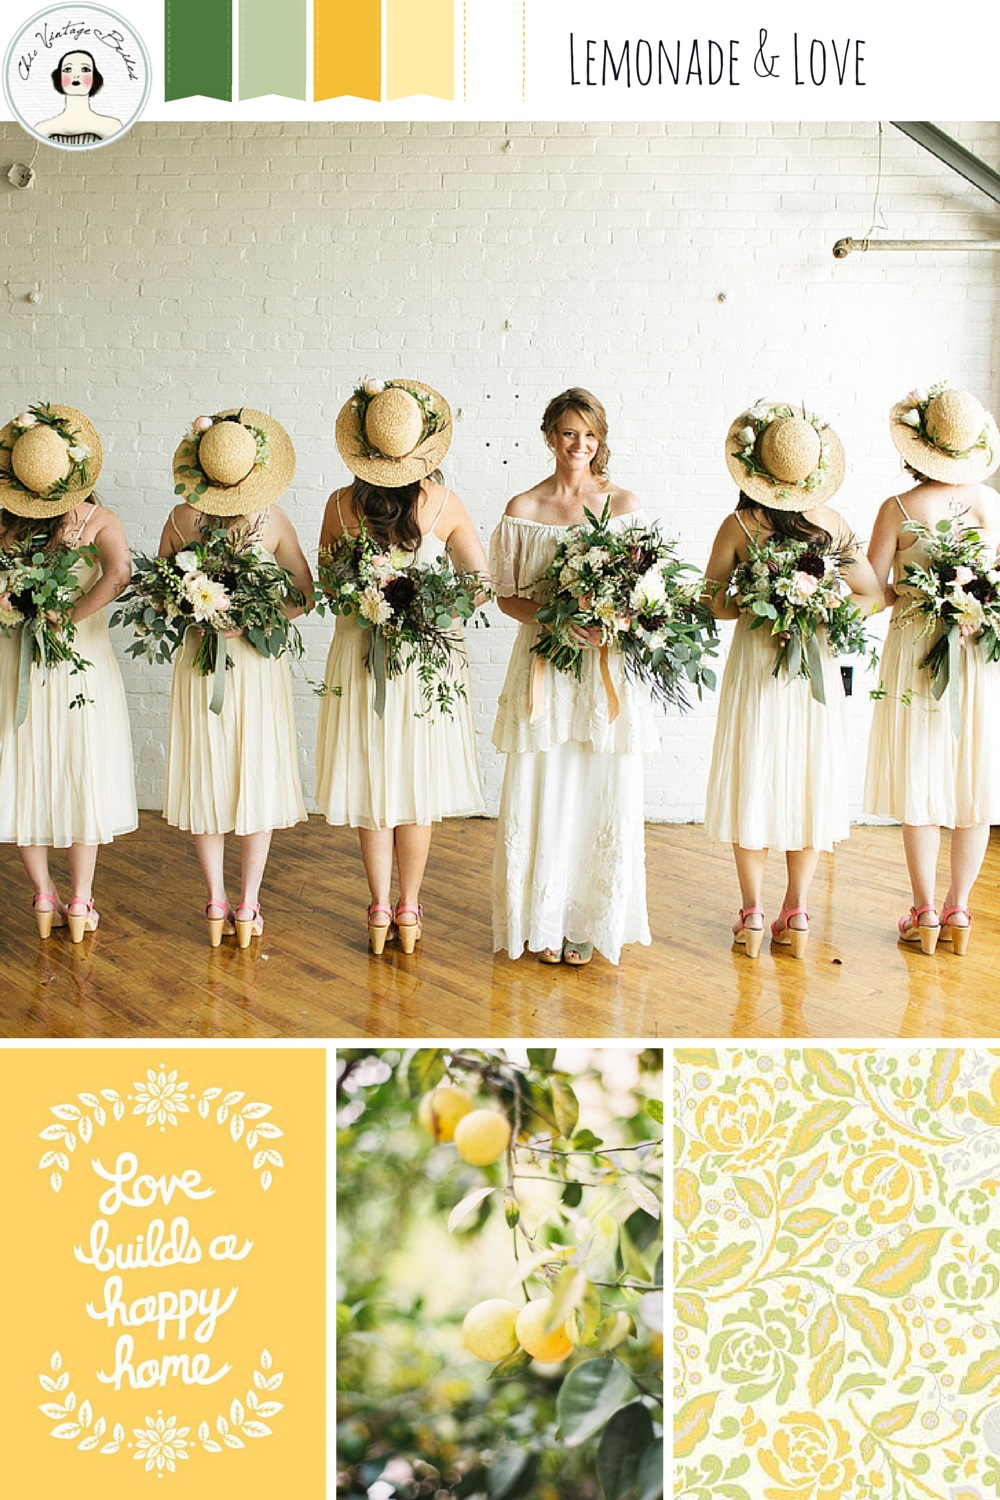 Lemonade & Love - Yellow Wedding Mood Board